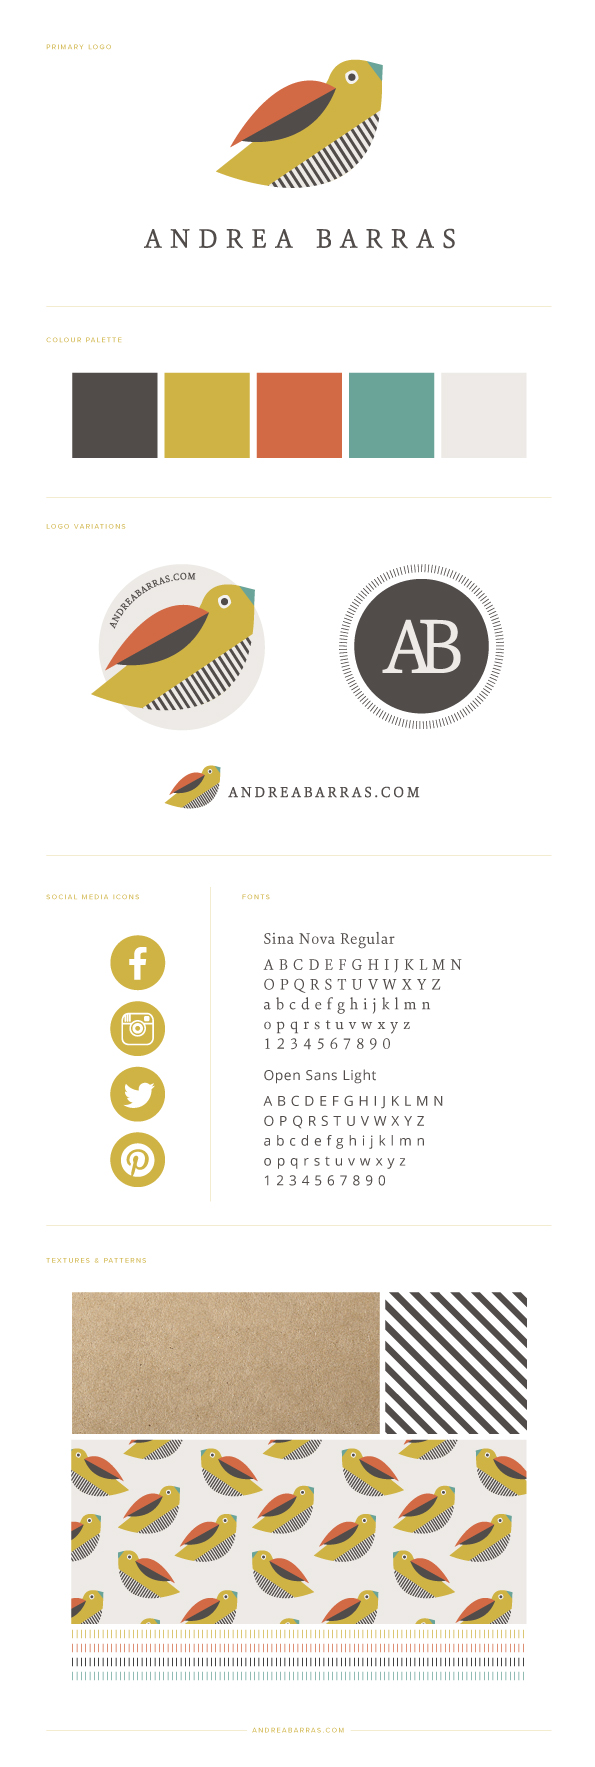 AB-new-branding-style-sheet-May-15